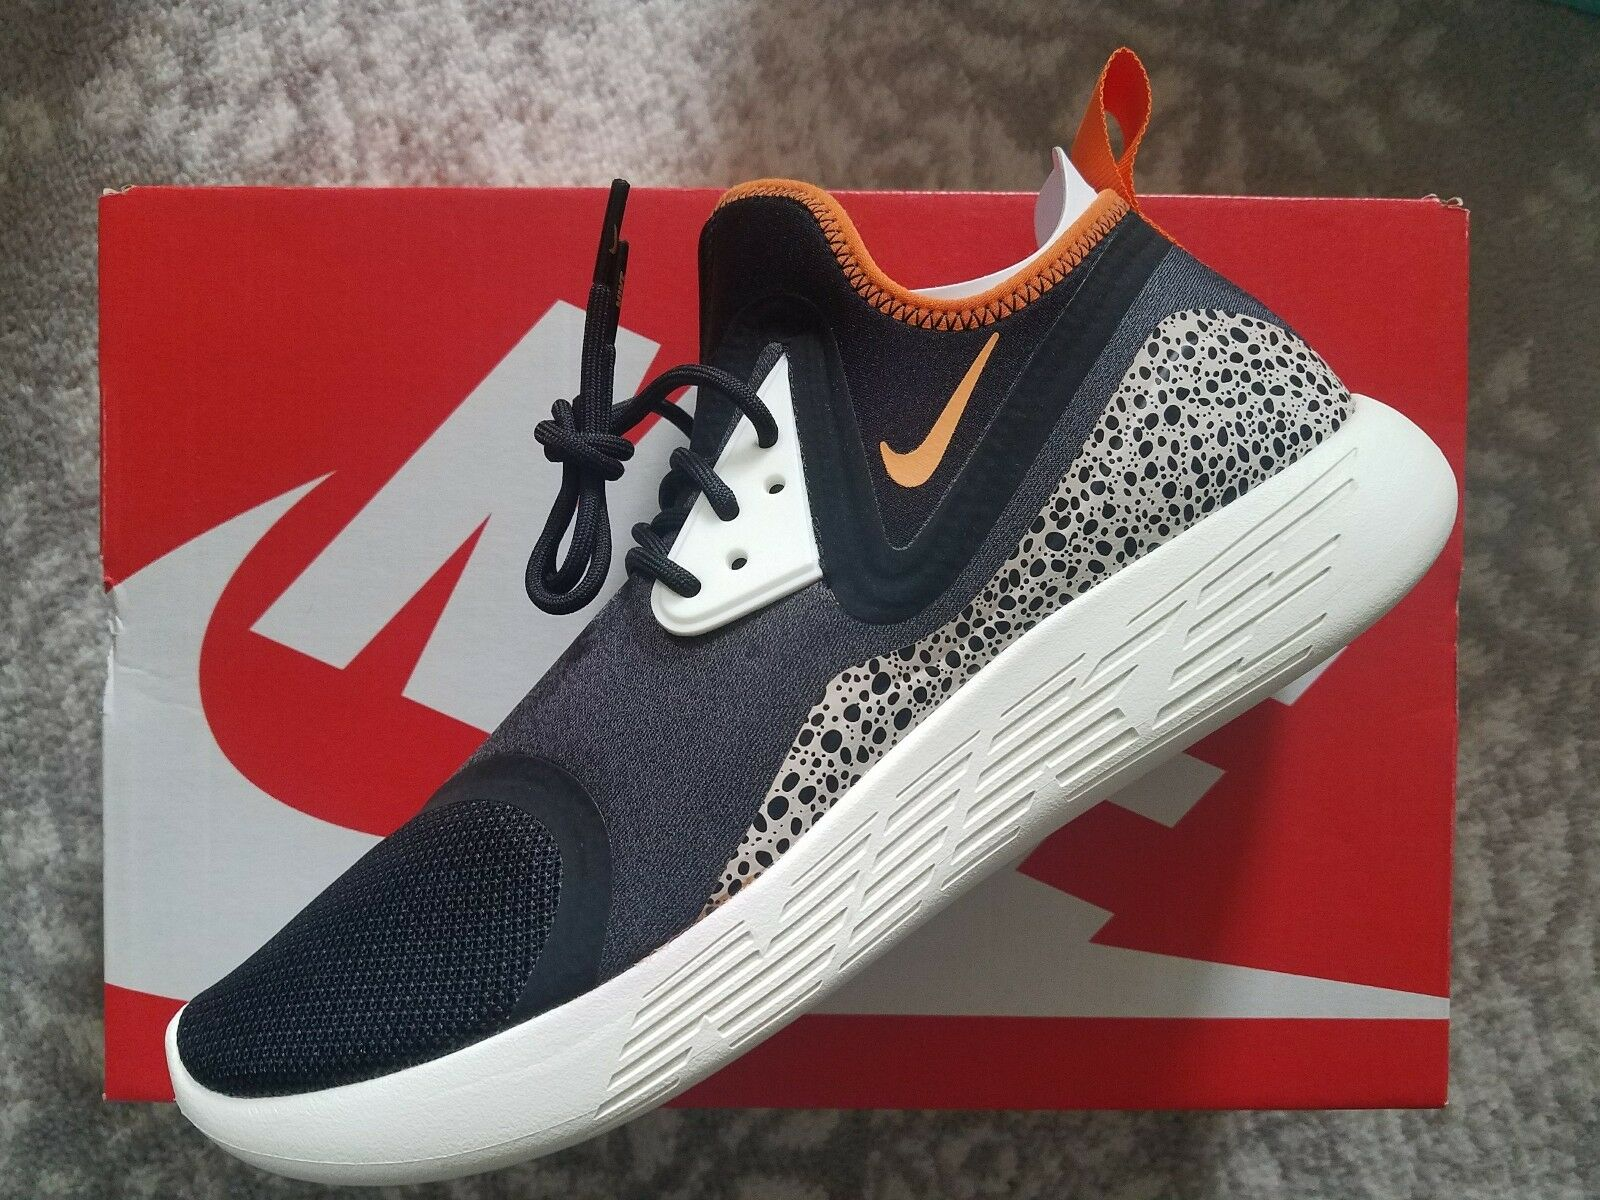 Nike Lunarcharge BN Safari Price reduction  best-selling model of the brand